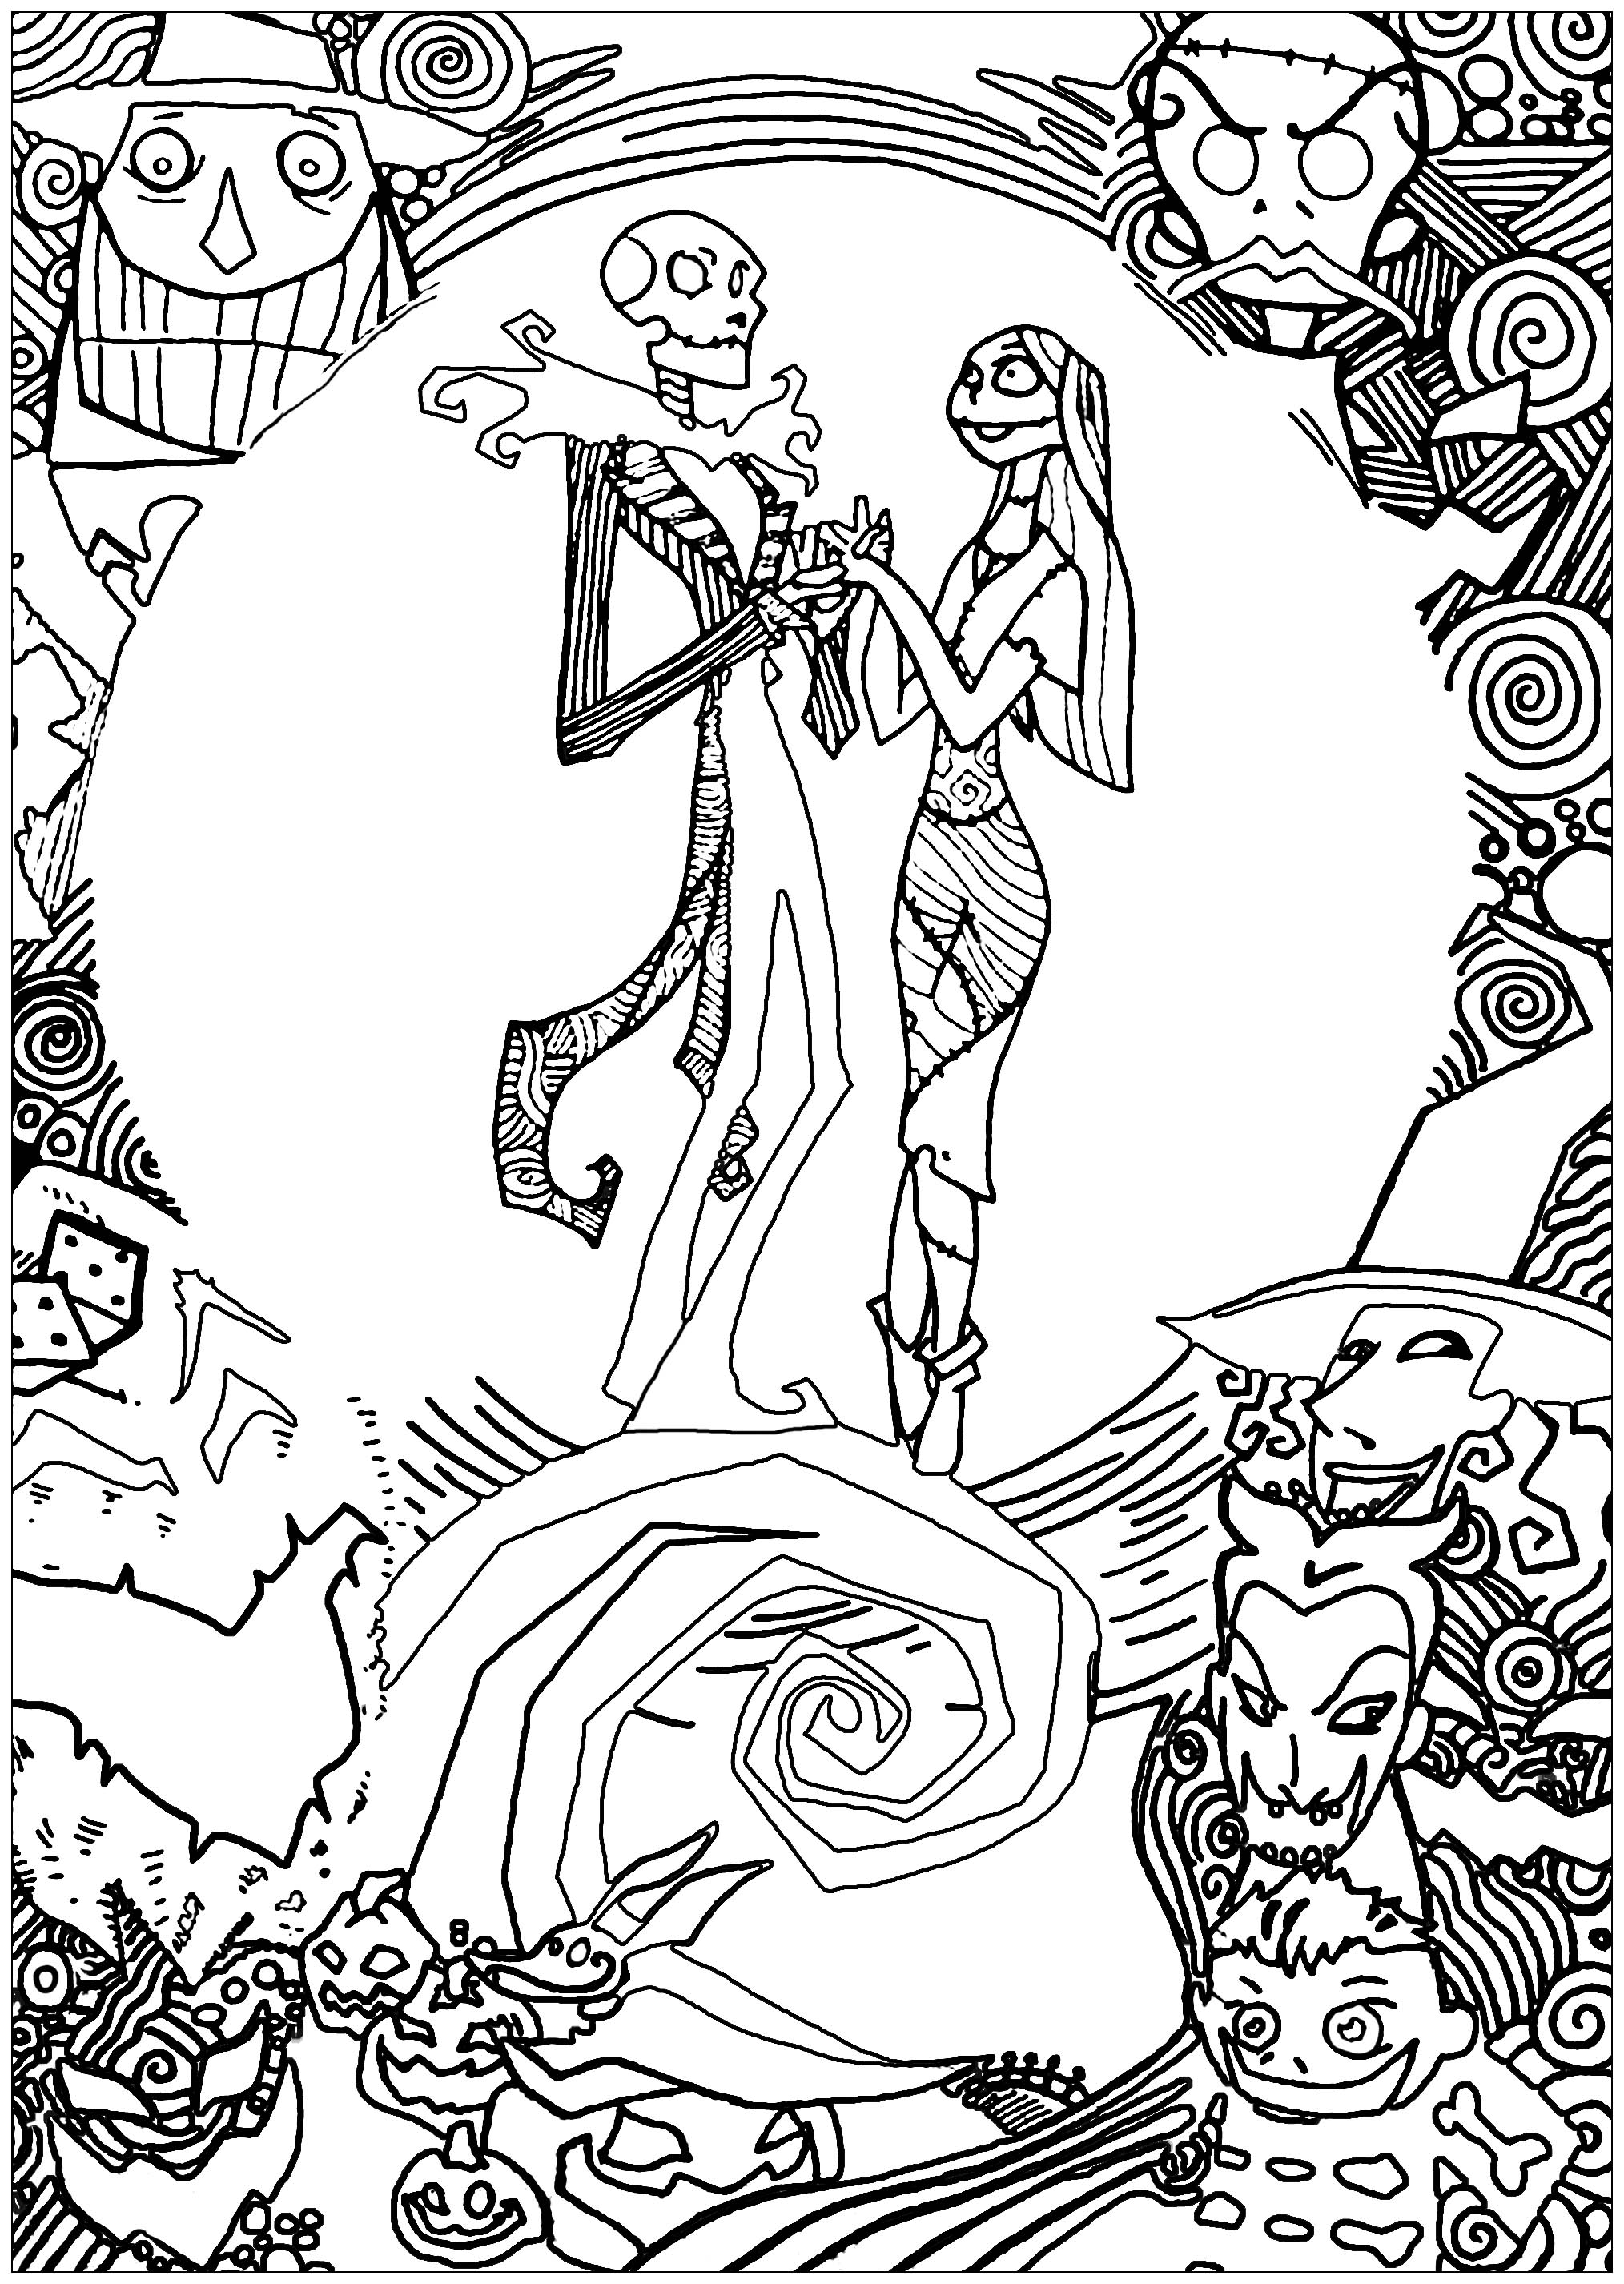 Nightmare Before Christmas Coloring Pages Classy Nighmare Before Christmas With Sully  Christmas  Coloring Pages Inspiration Design